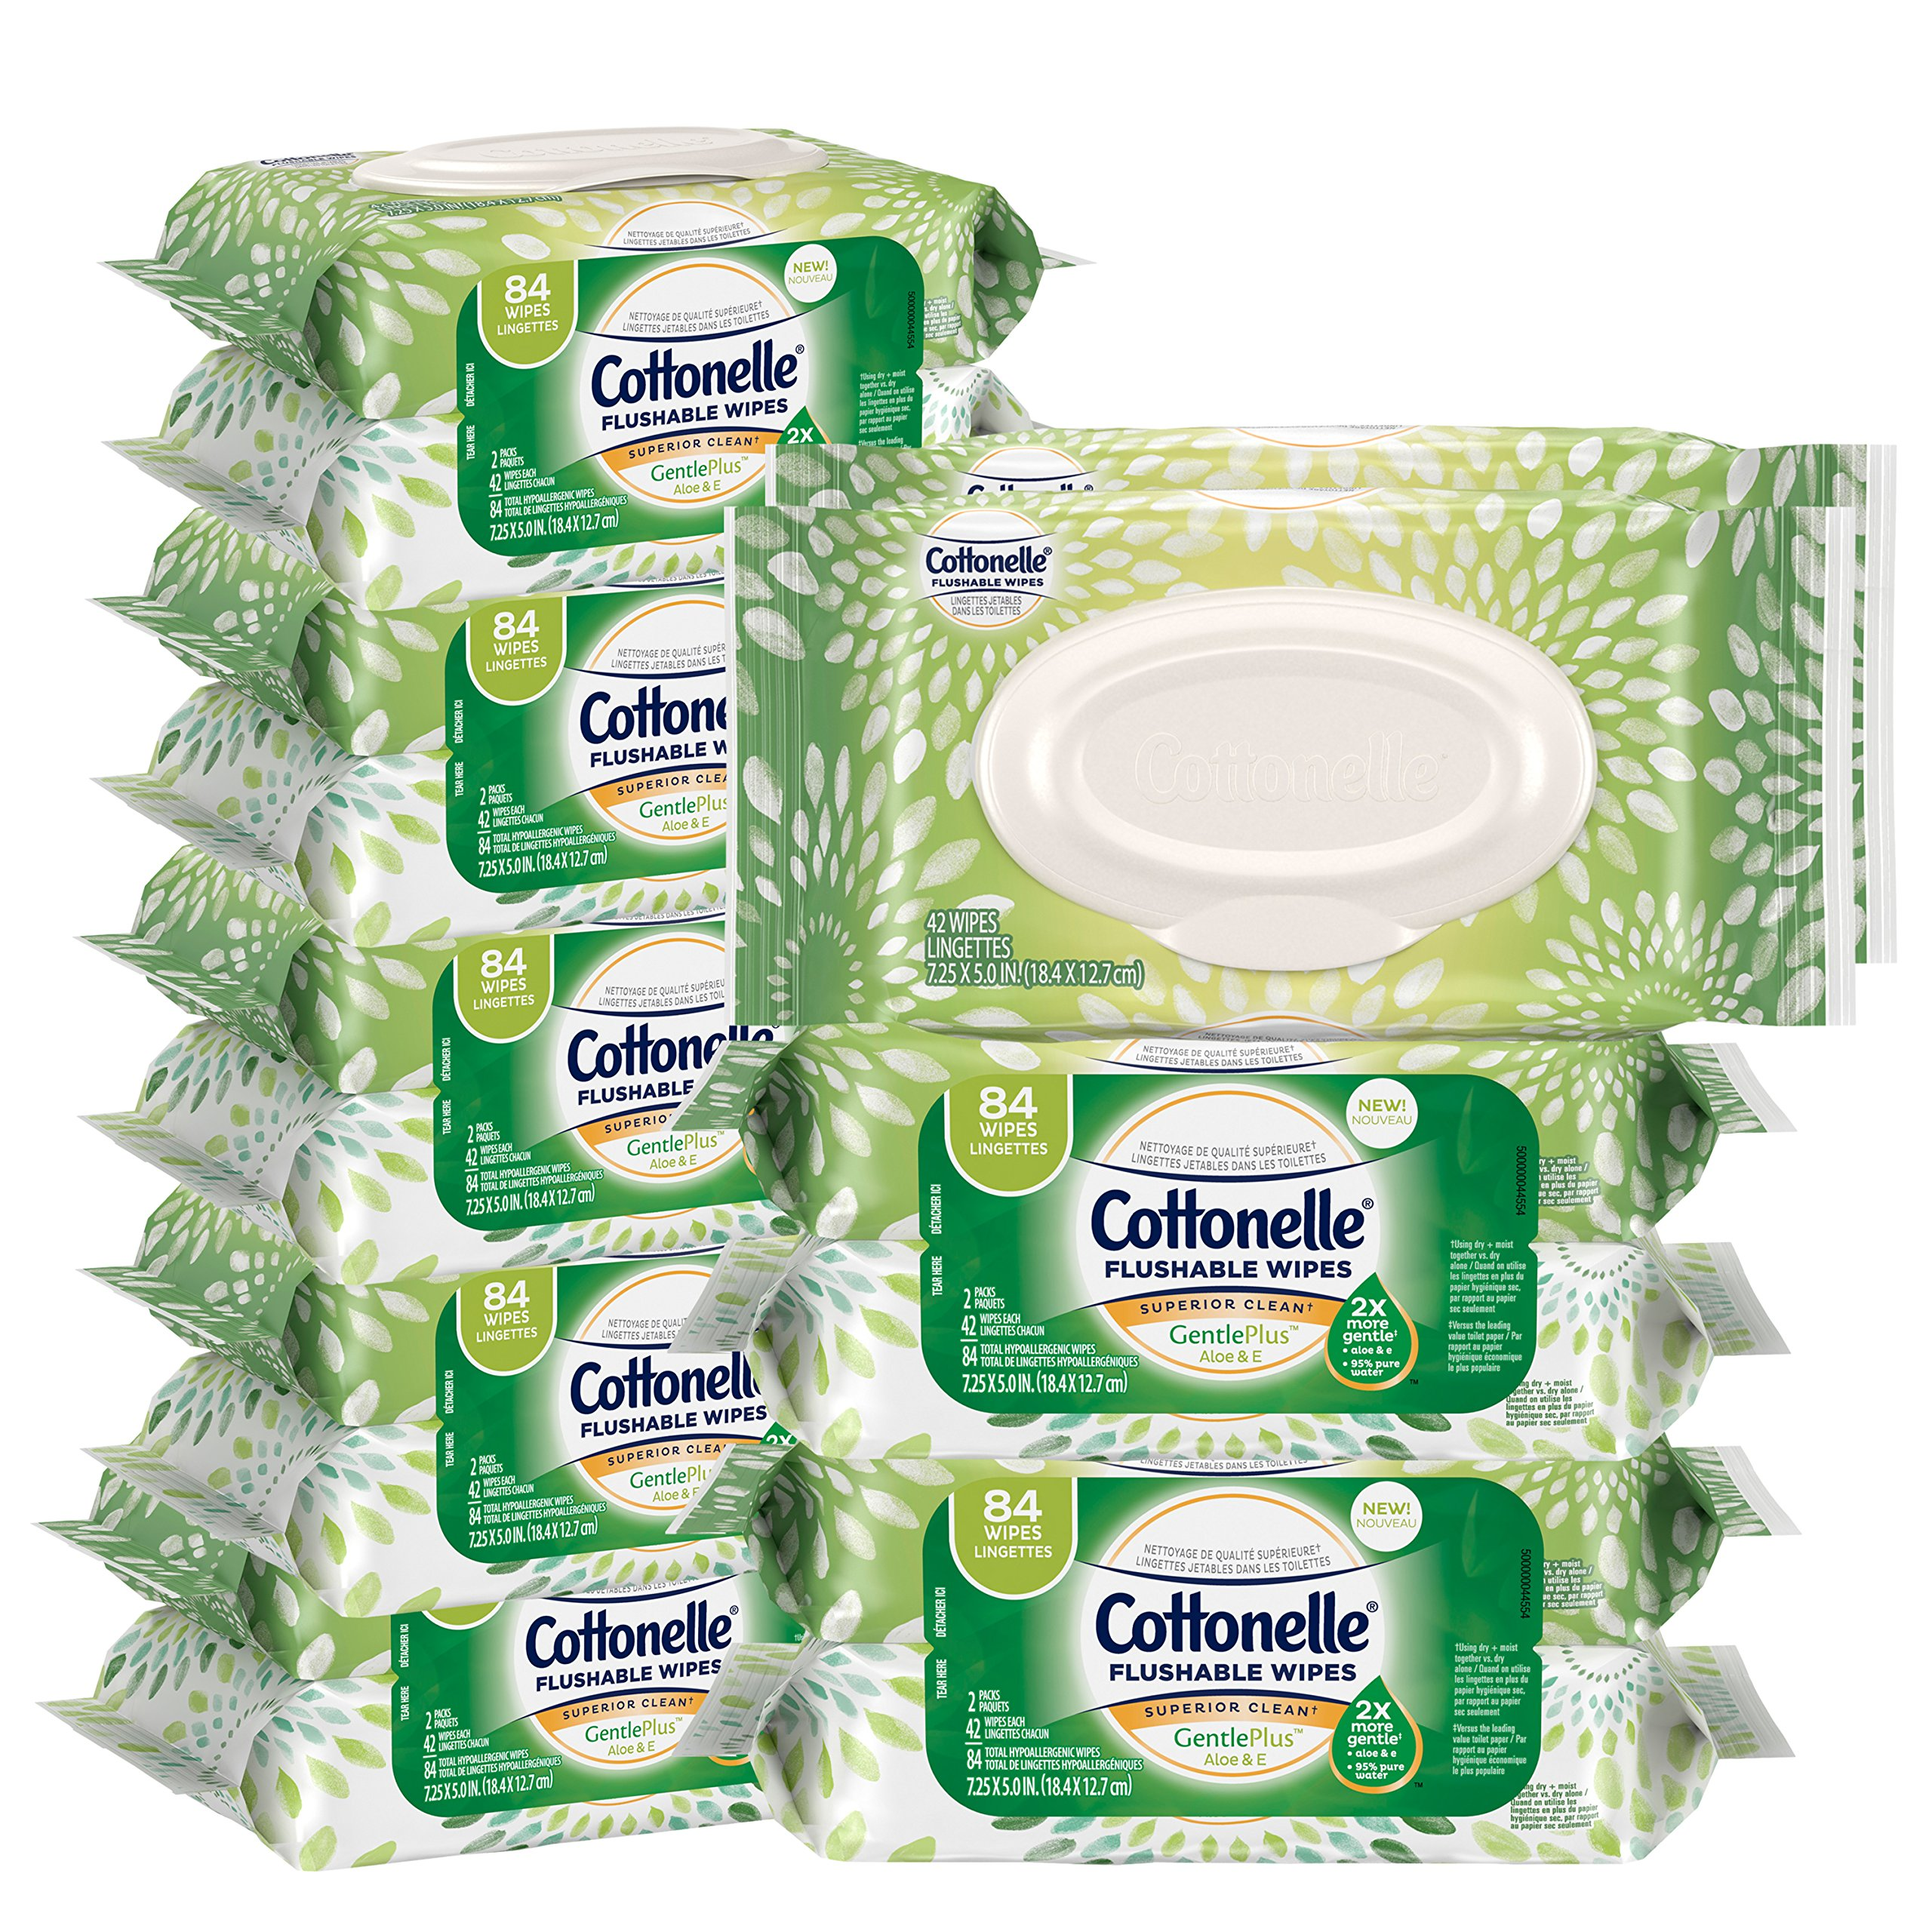 Cottonelle GentlePlus Flushable Wet Wipes with Aloe & Vitamin E, 84 Count, Pack of 8 by Cottonelle